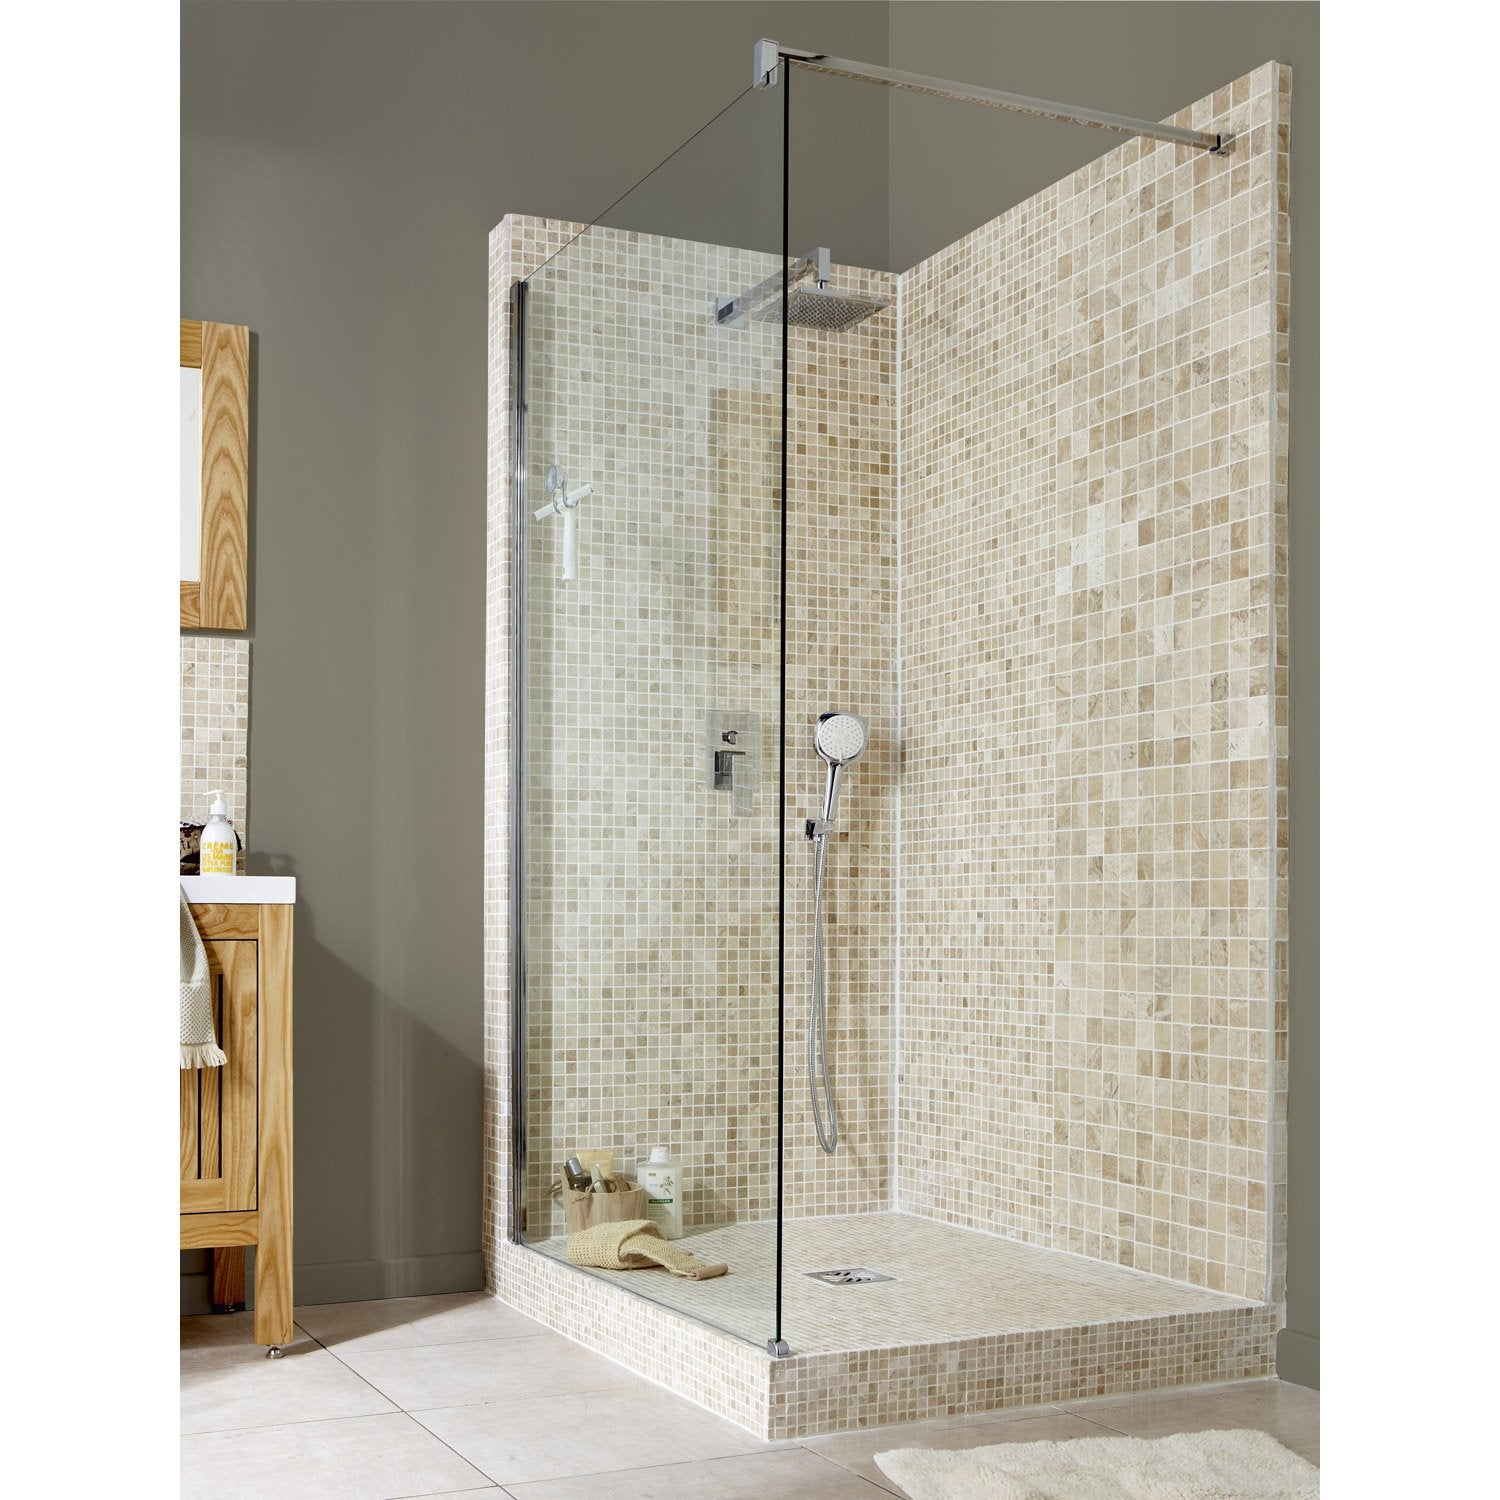 Paroi de douche l 39 italienne elis e 1 profil chrom 120 cm leroy merlin for Photo de douche a l italienne